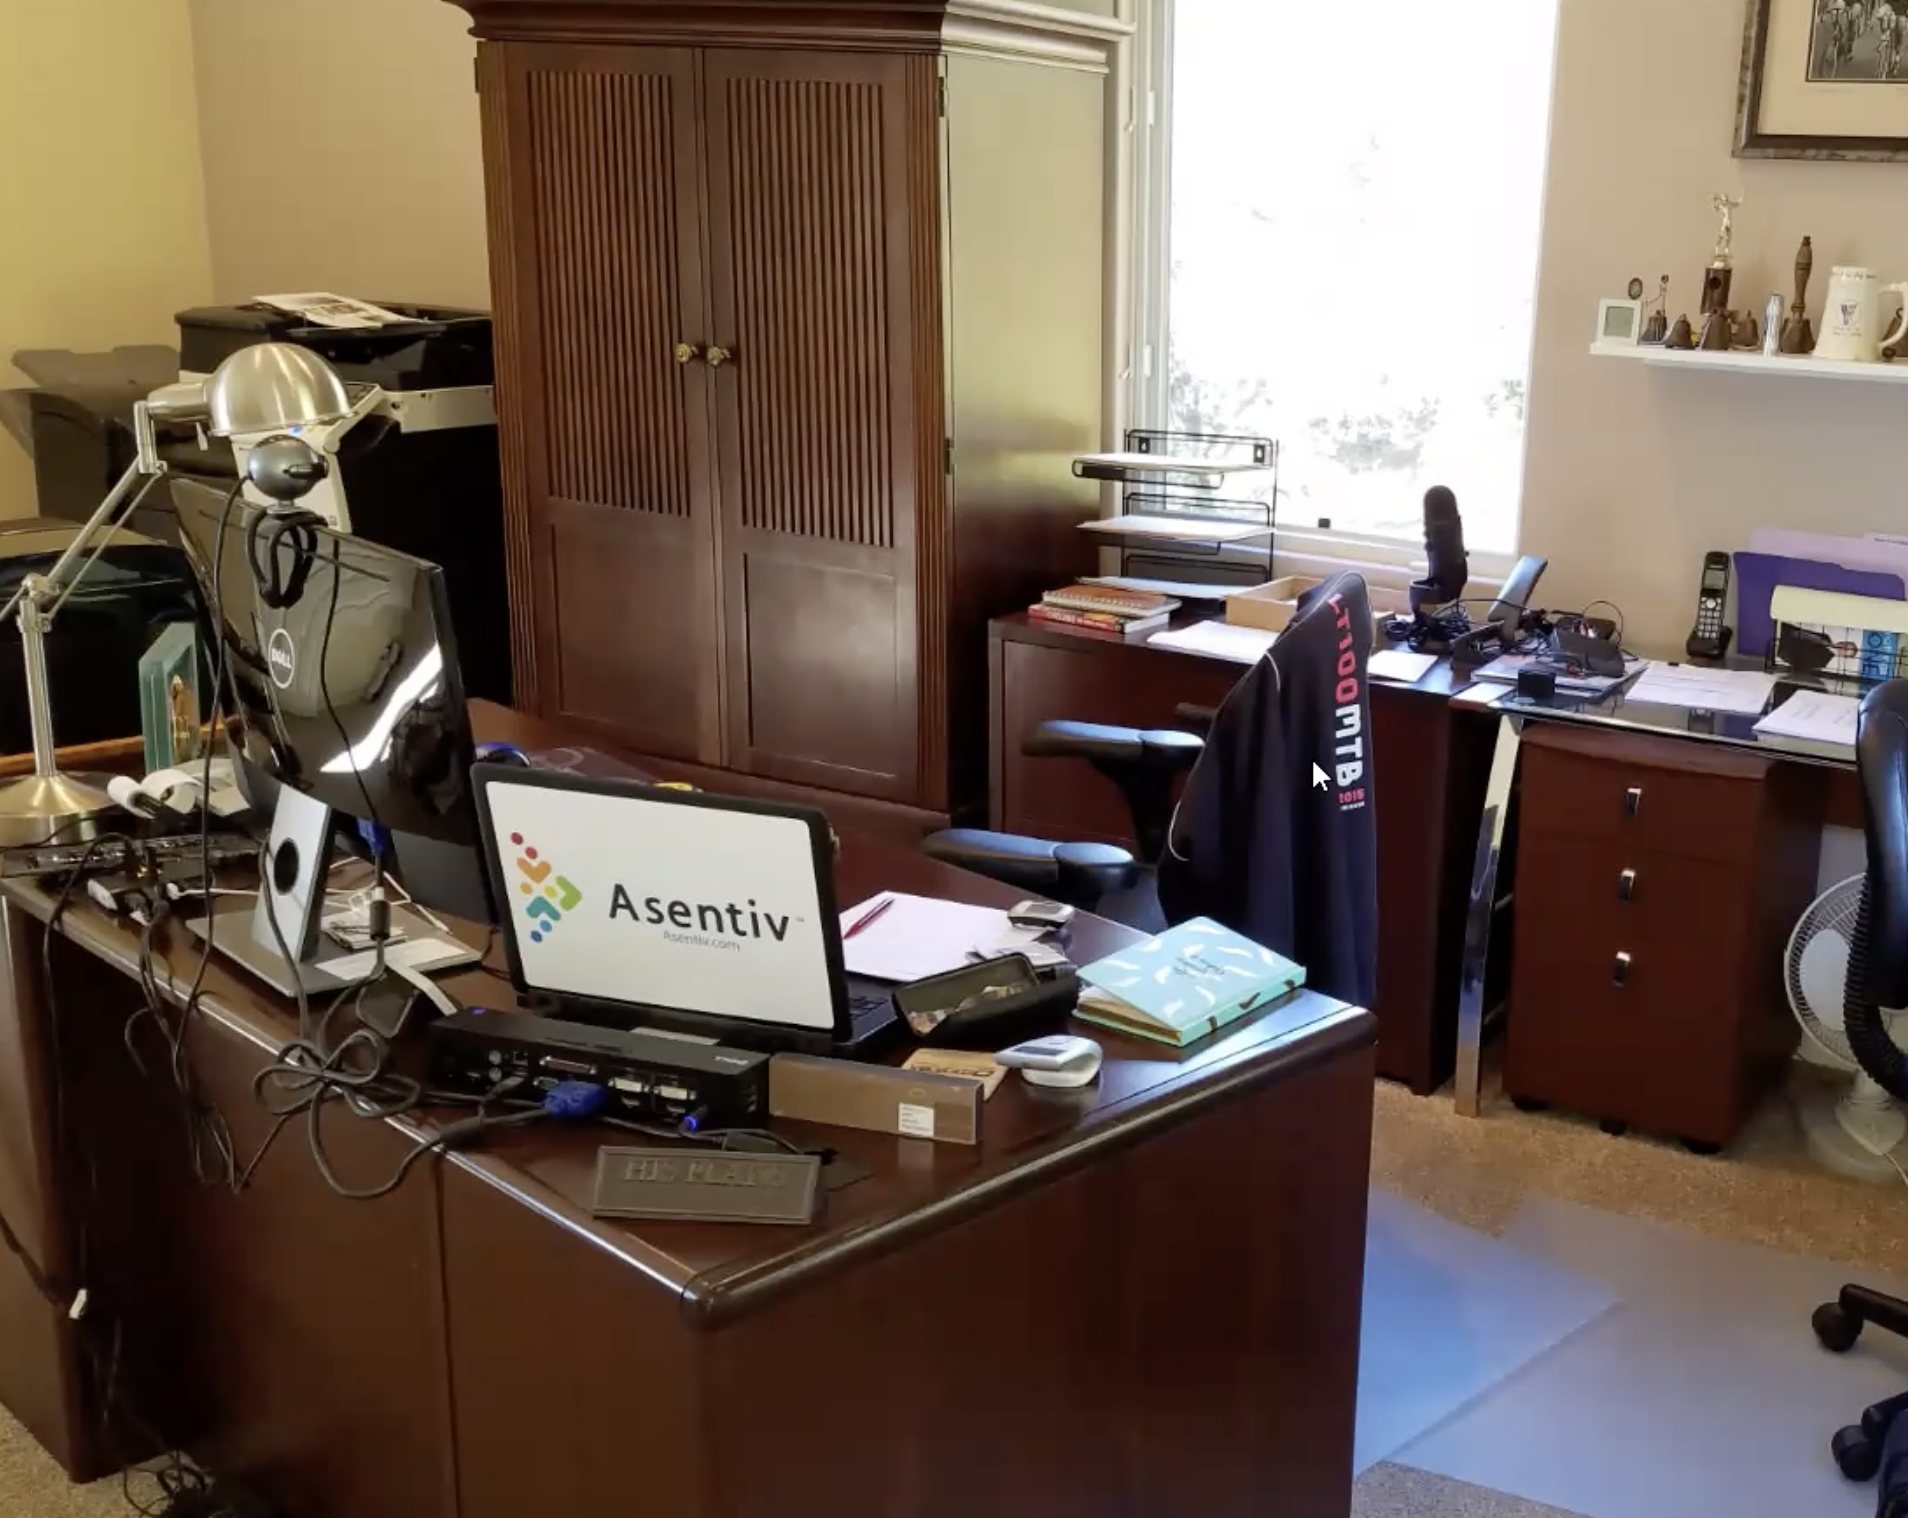 mike-macedonio-asentiv-home-office-mess